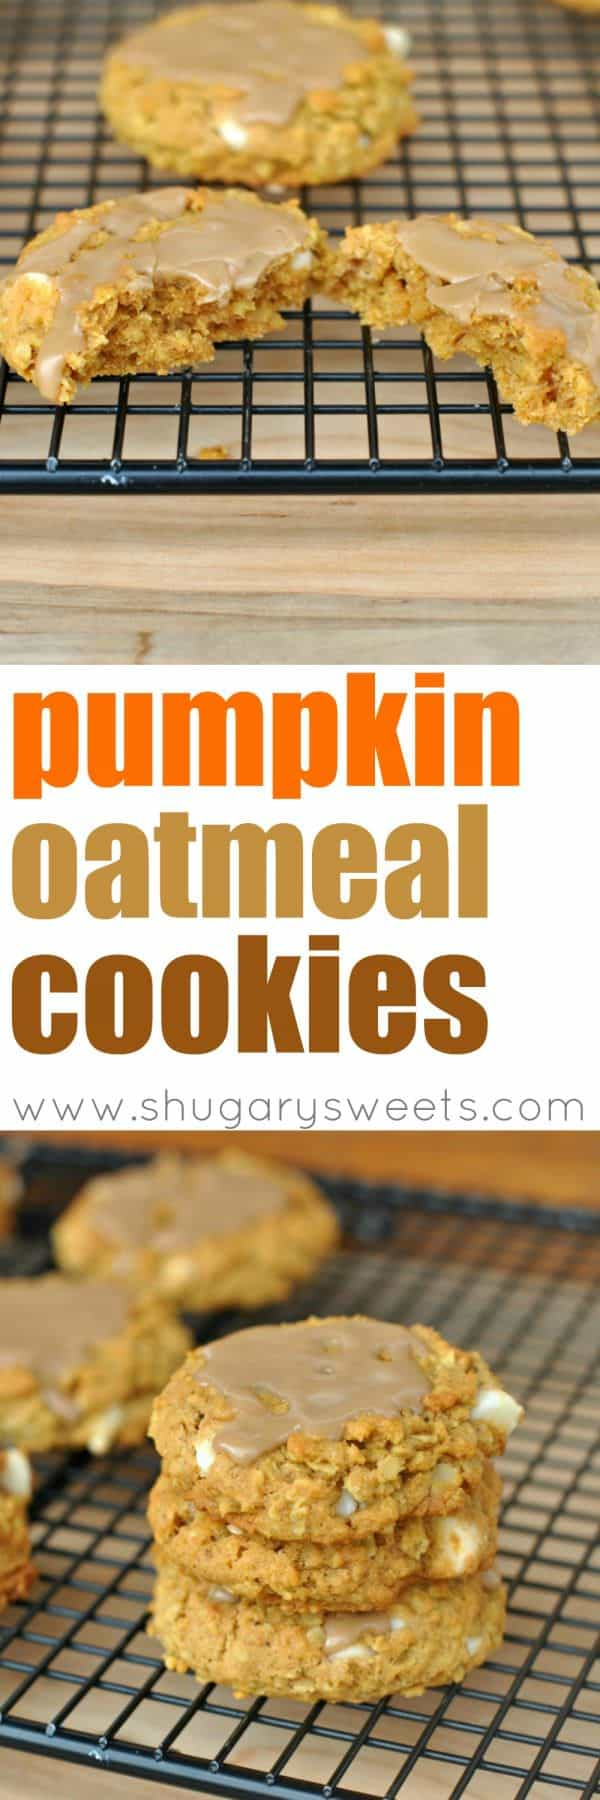 Chewy Pumpkin Oatmeal Cookies with White Chocolate Morsels and Maple Glaze.